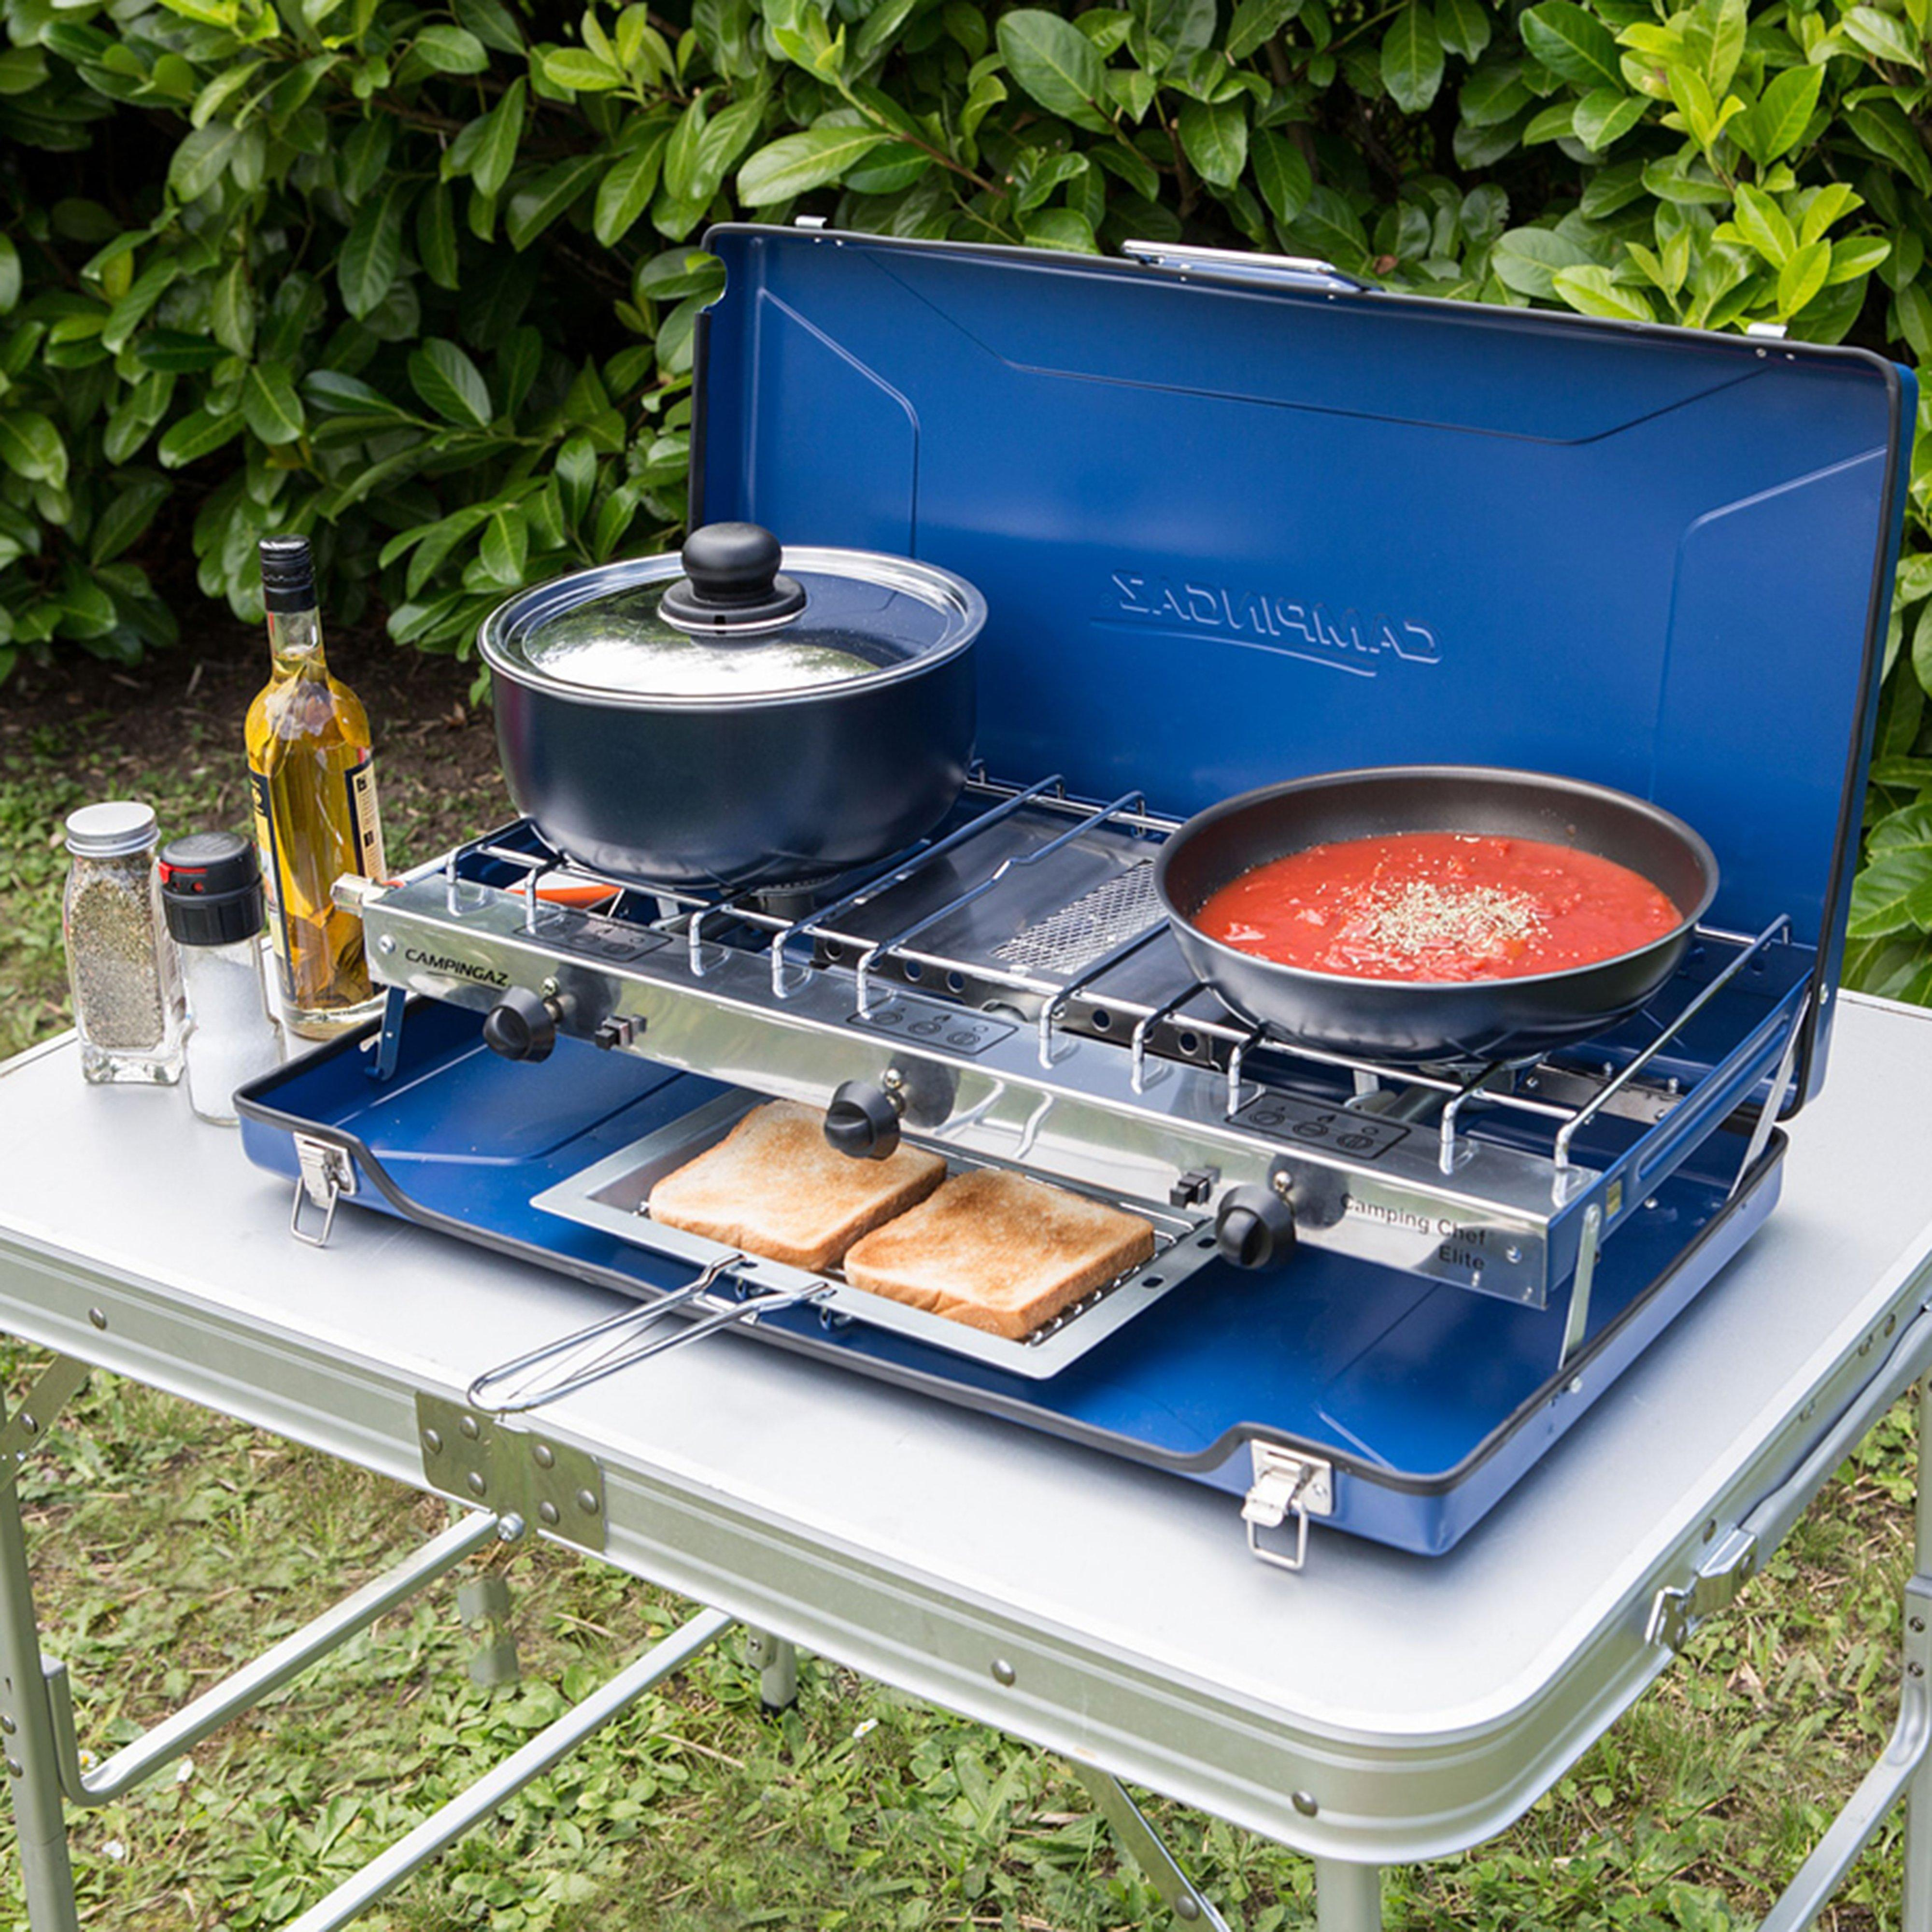 Campingaz Campingaz Elite Camping Chef Double Burner and Grill